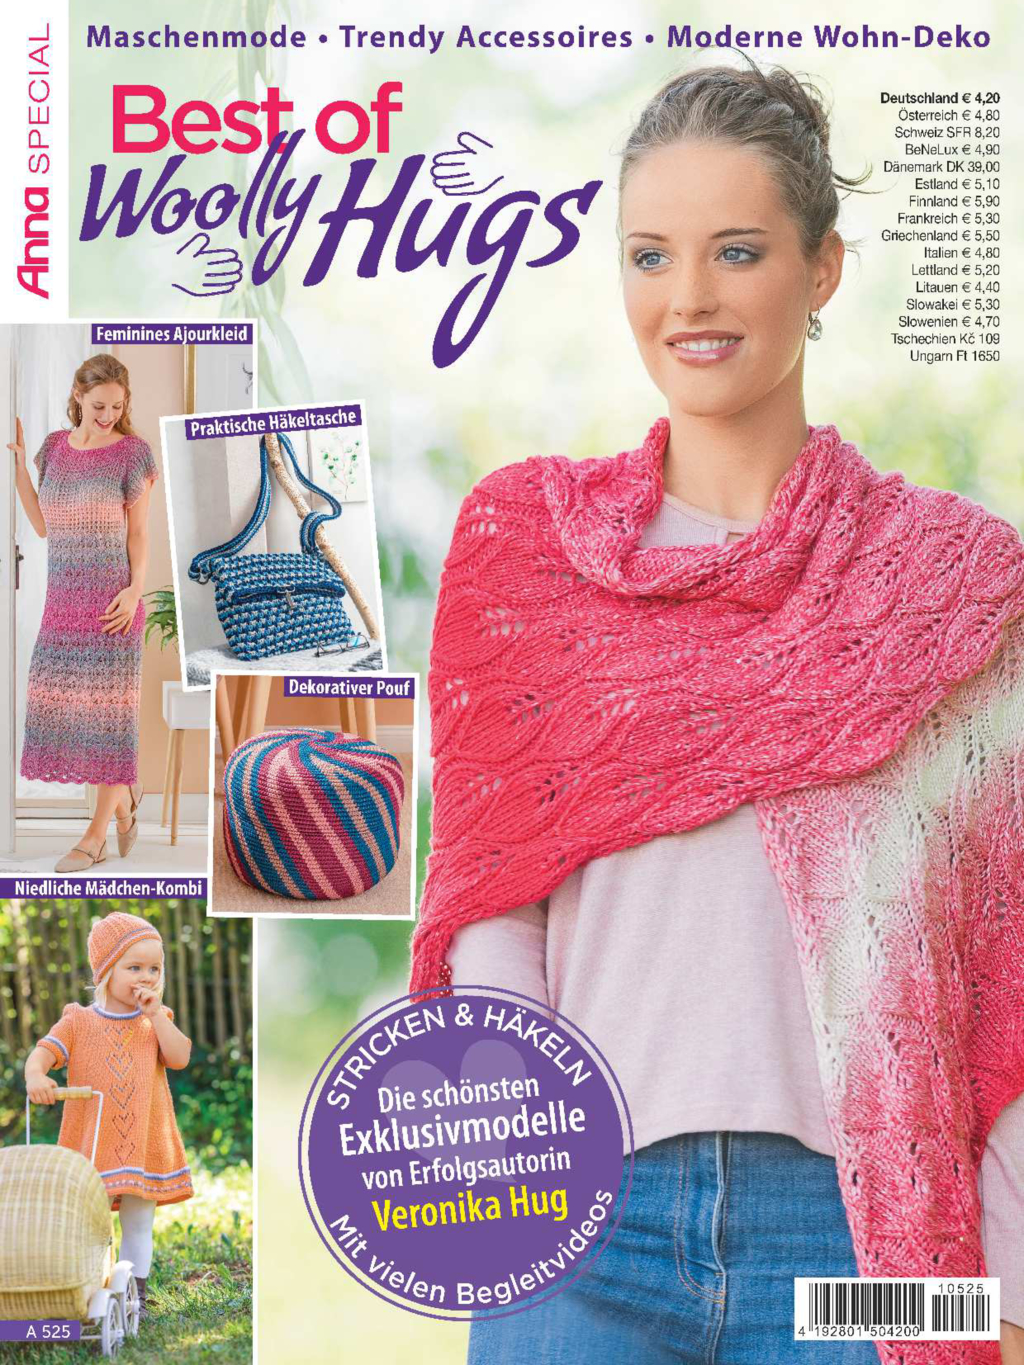 Anna Special A 525 - Best of Woolly Hugs